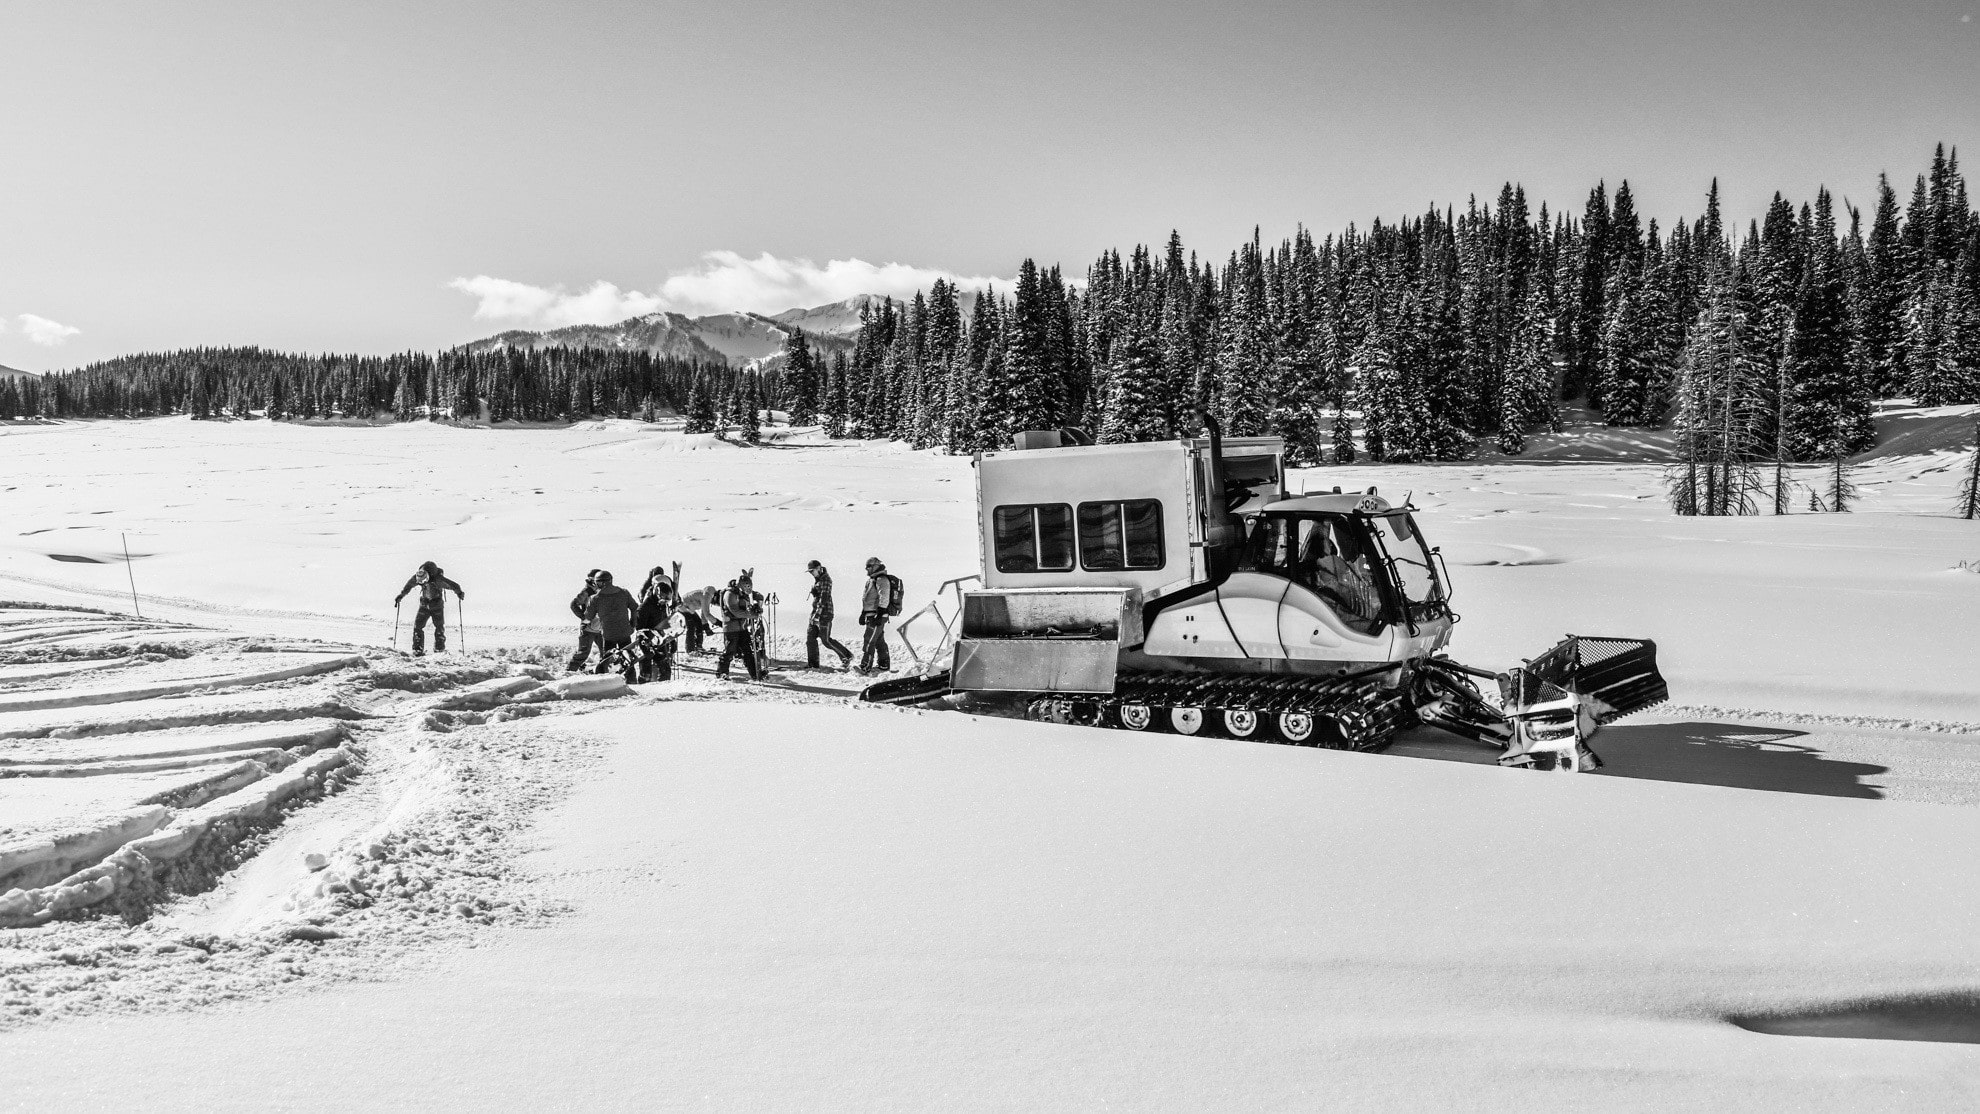 Snowcat Skiing with irwin guides in Crested Butte was a once in a lifetime experience